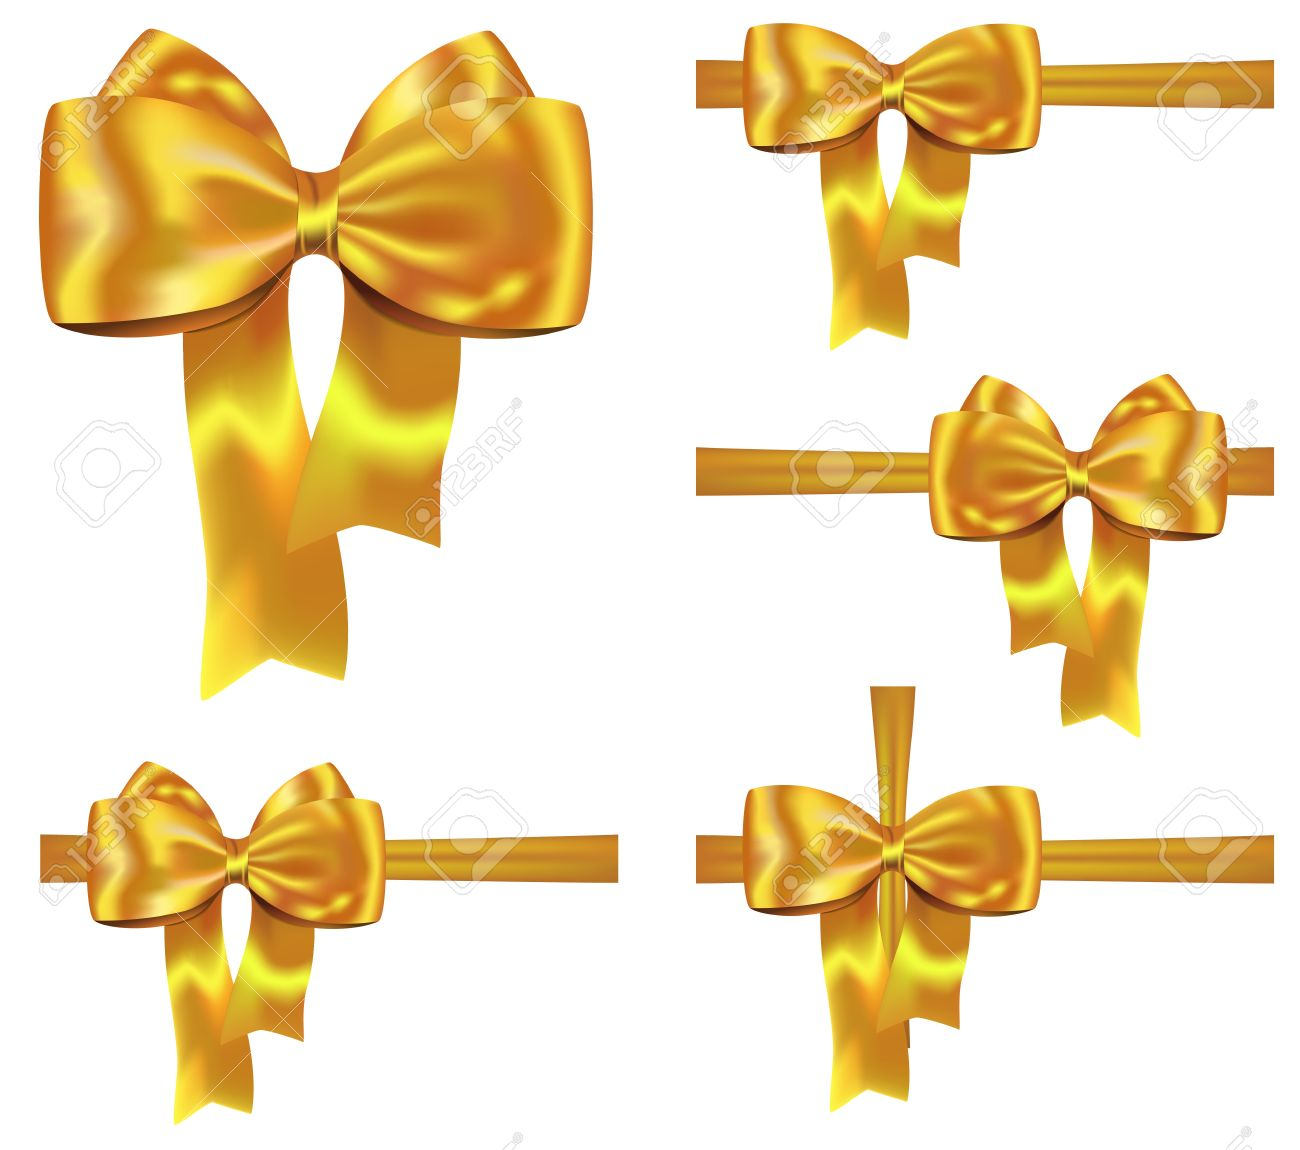 Set of golden gift ribbons with nice bows for festive decorations set of golden gift ribbons with nice bows for festive decorations stock vector 16136669 negle Image collections